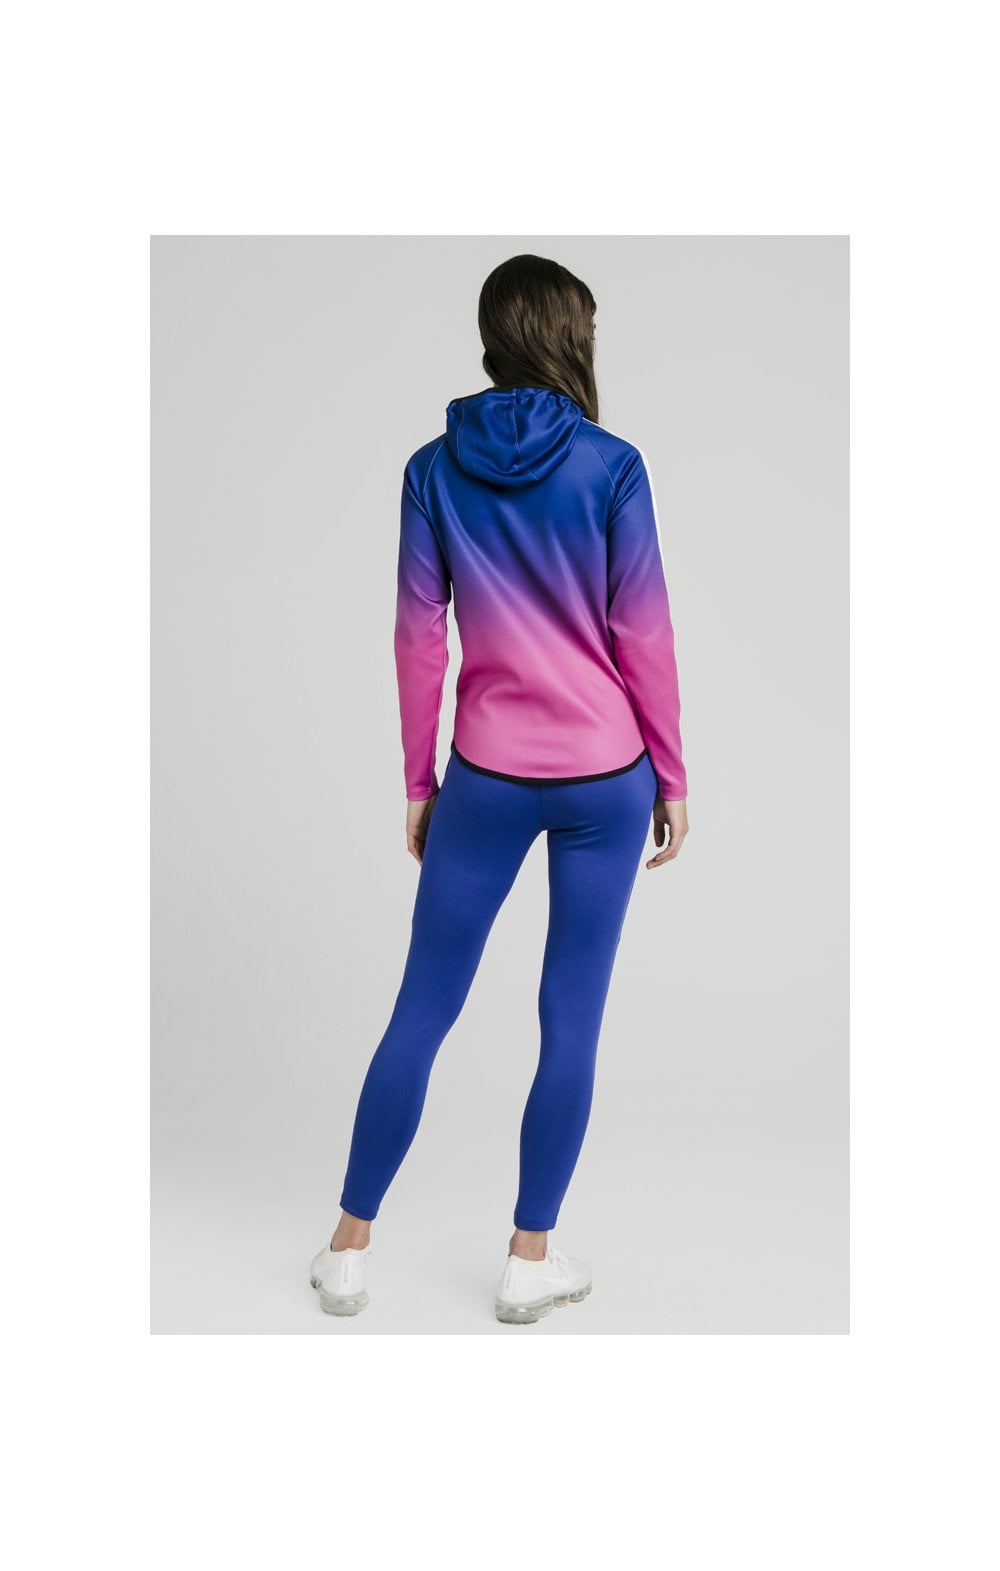 Load image into Gallery viewer, SikSilk Athlete Fade Zip Through Hoodie – Blue & Rose (6)